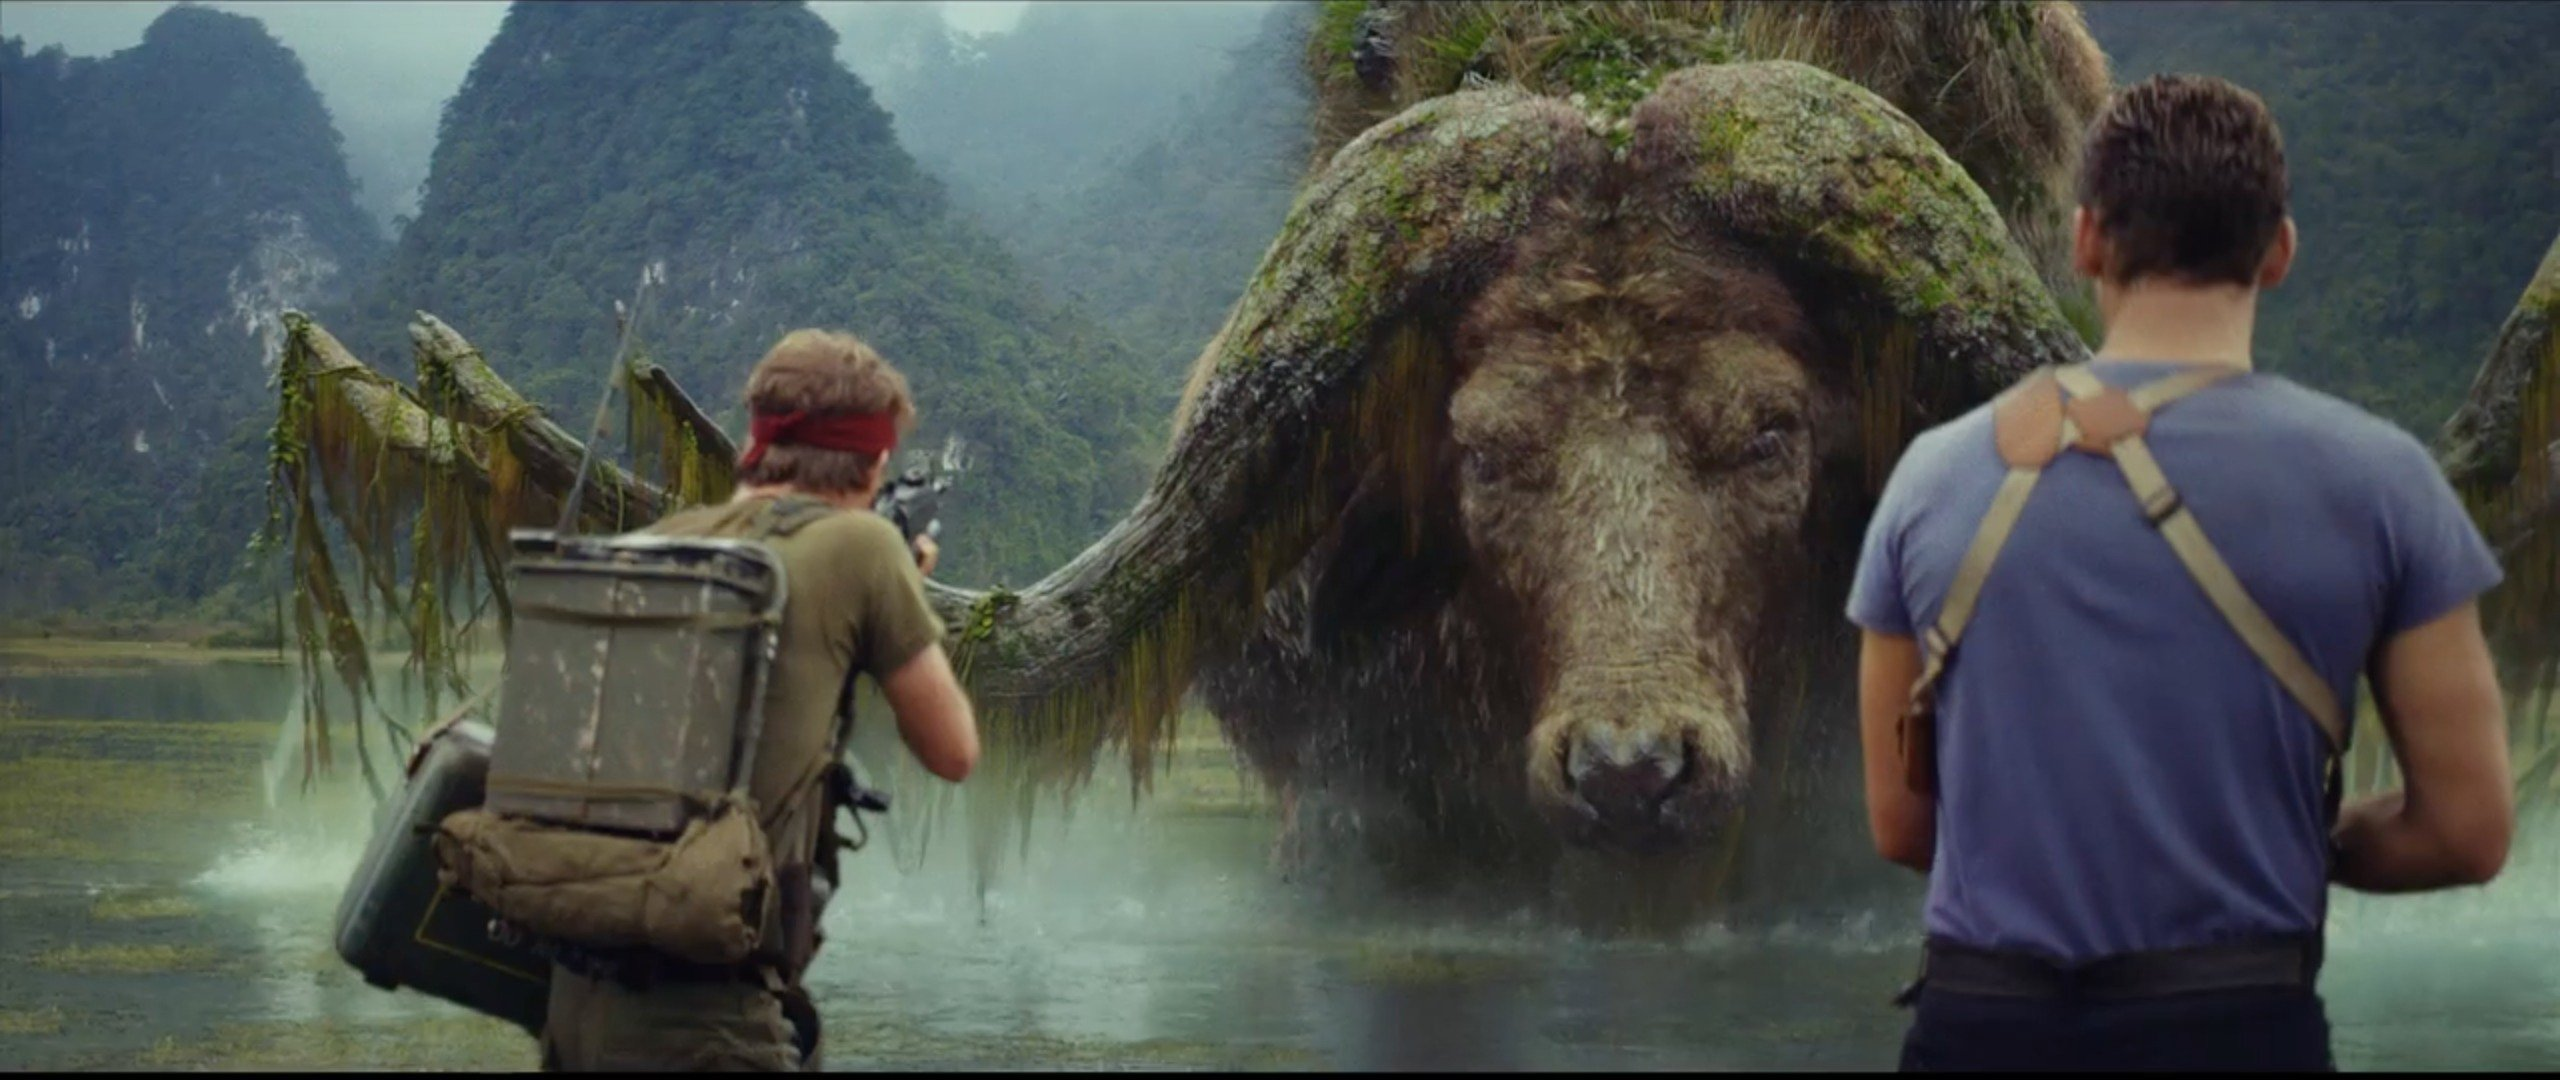 The Incredibly Fun KONG: SKULL ISLAND Makes a Monkey Out of